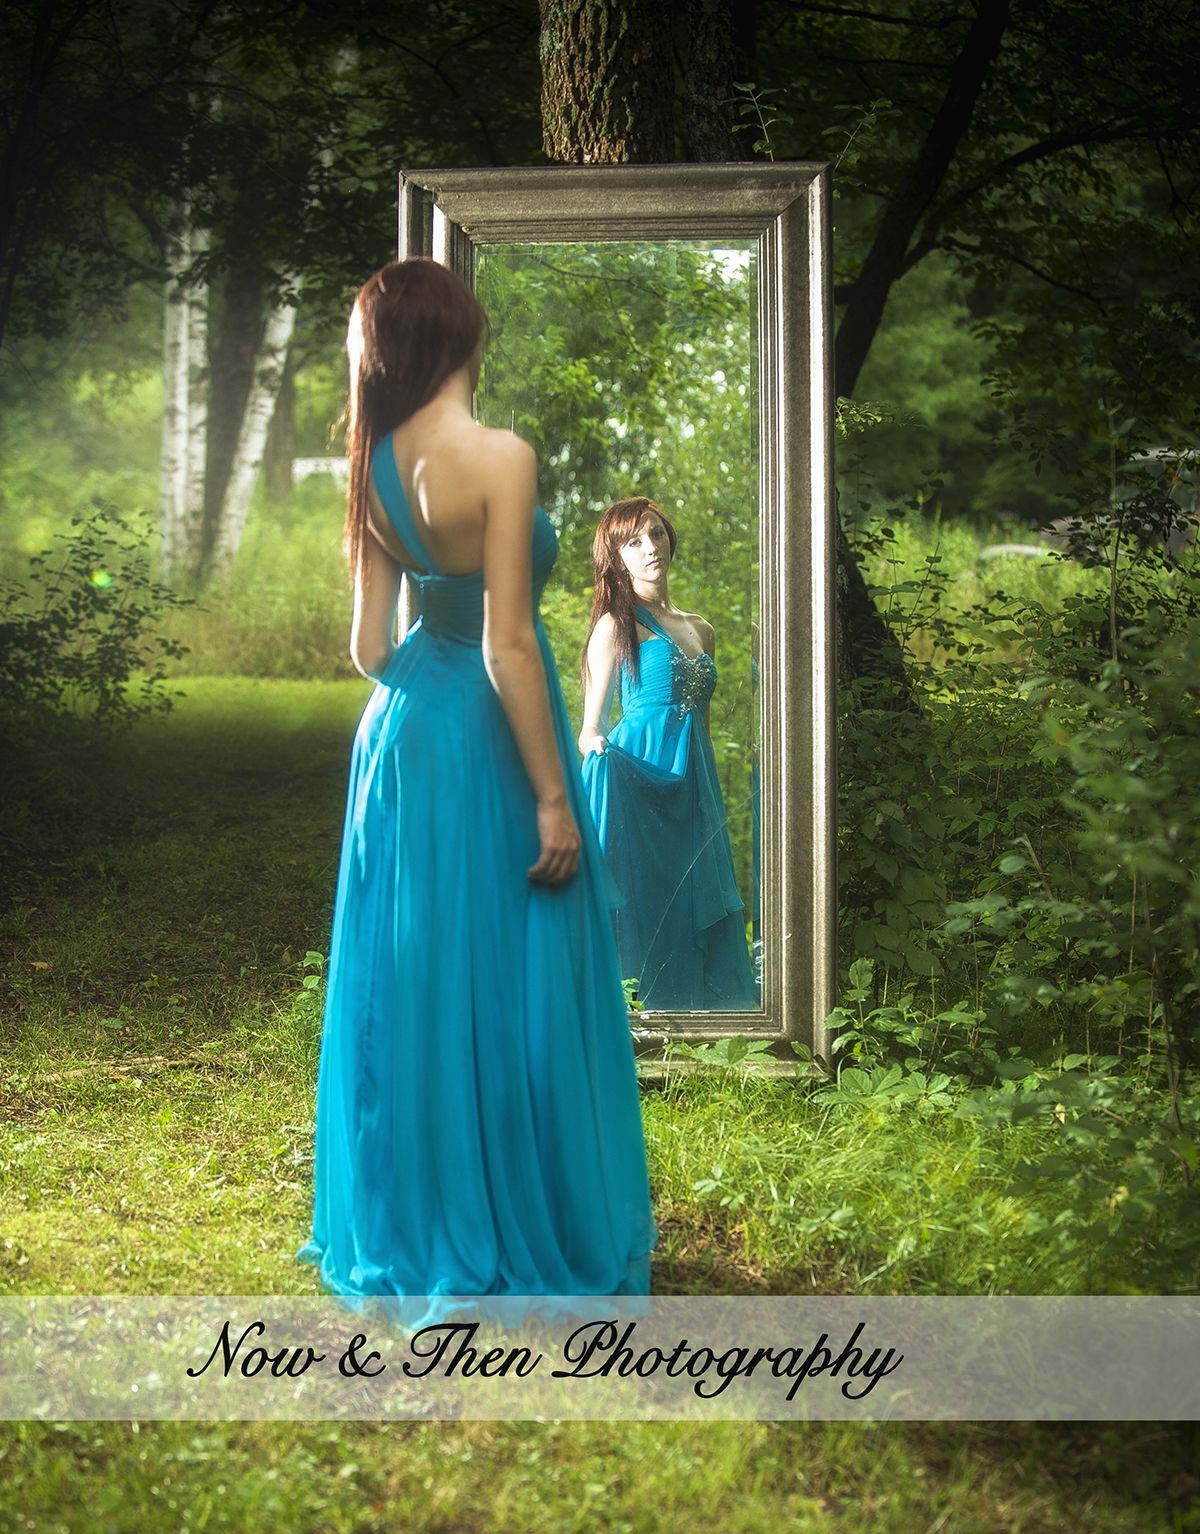 mirror lake buddhist single women Single women fiction see more refine by amazon prime eligible for free shipping mirror lake aaa mirrored voices mirror lake wolves dave porter jillian.